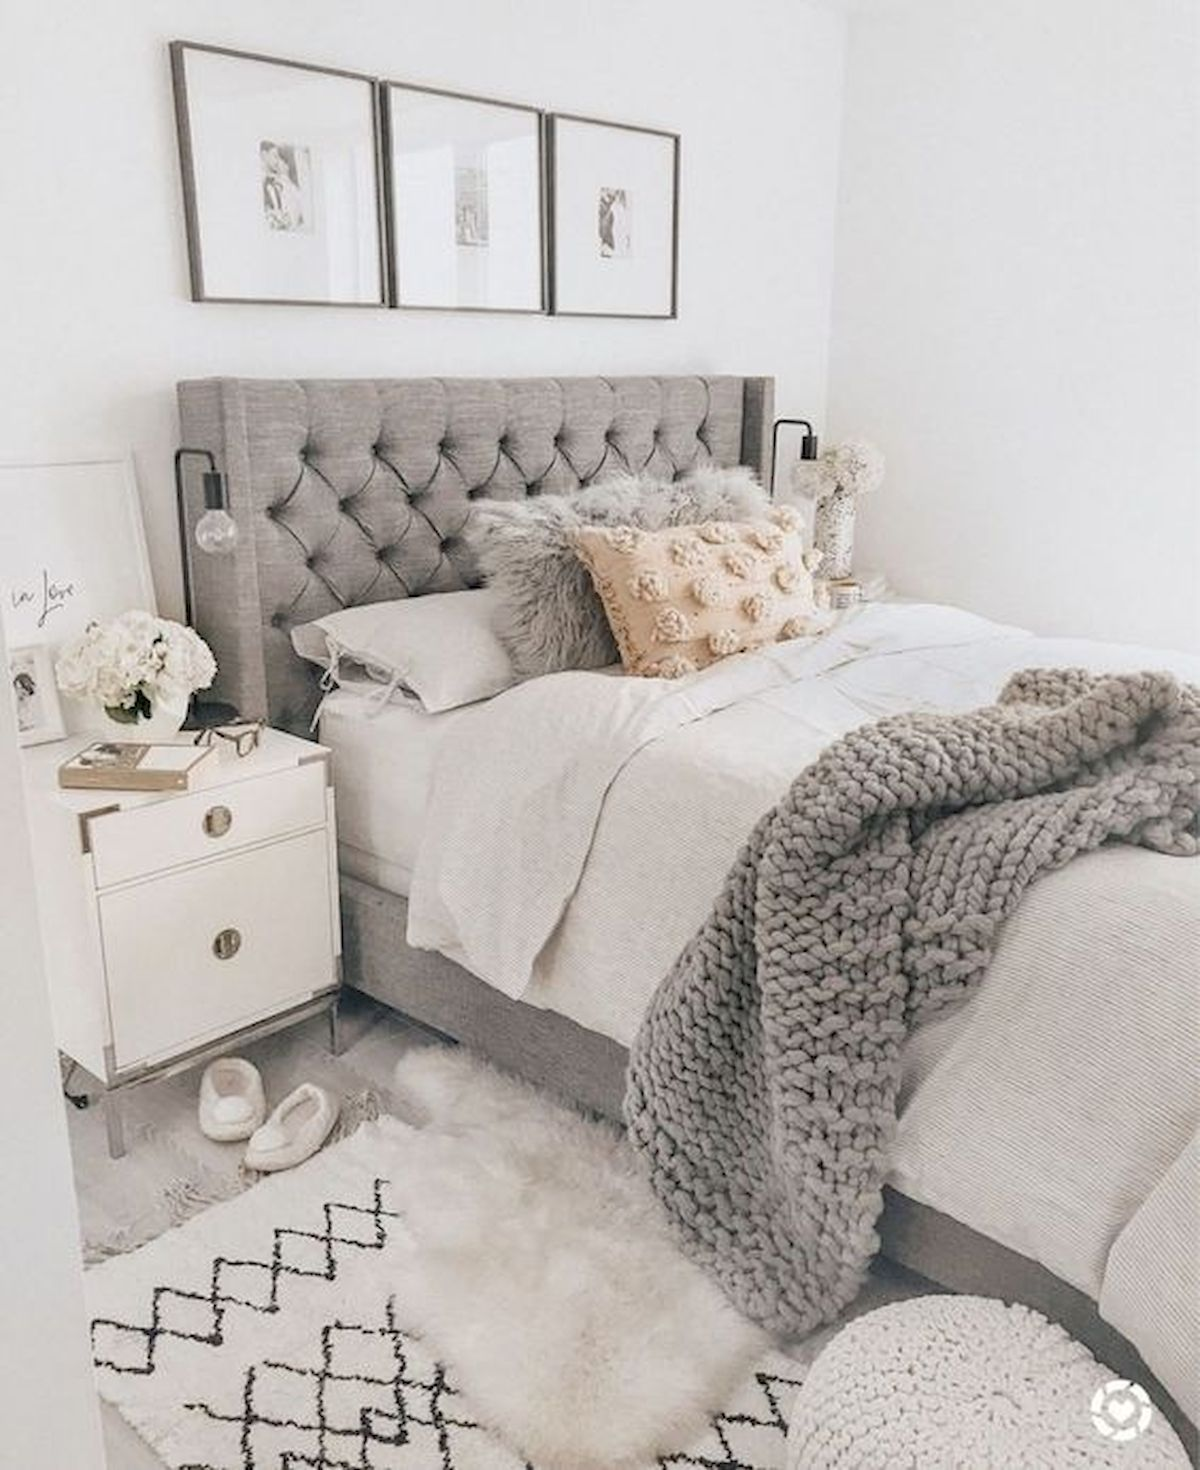 Pin By Mor Bensimon On Home Sweet Home Cozy Home Decorating Bedroom Decor Bedroom Design